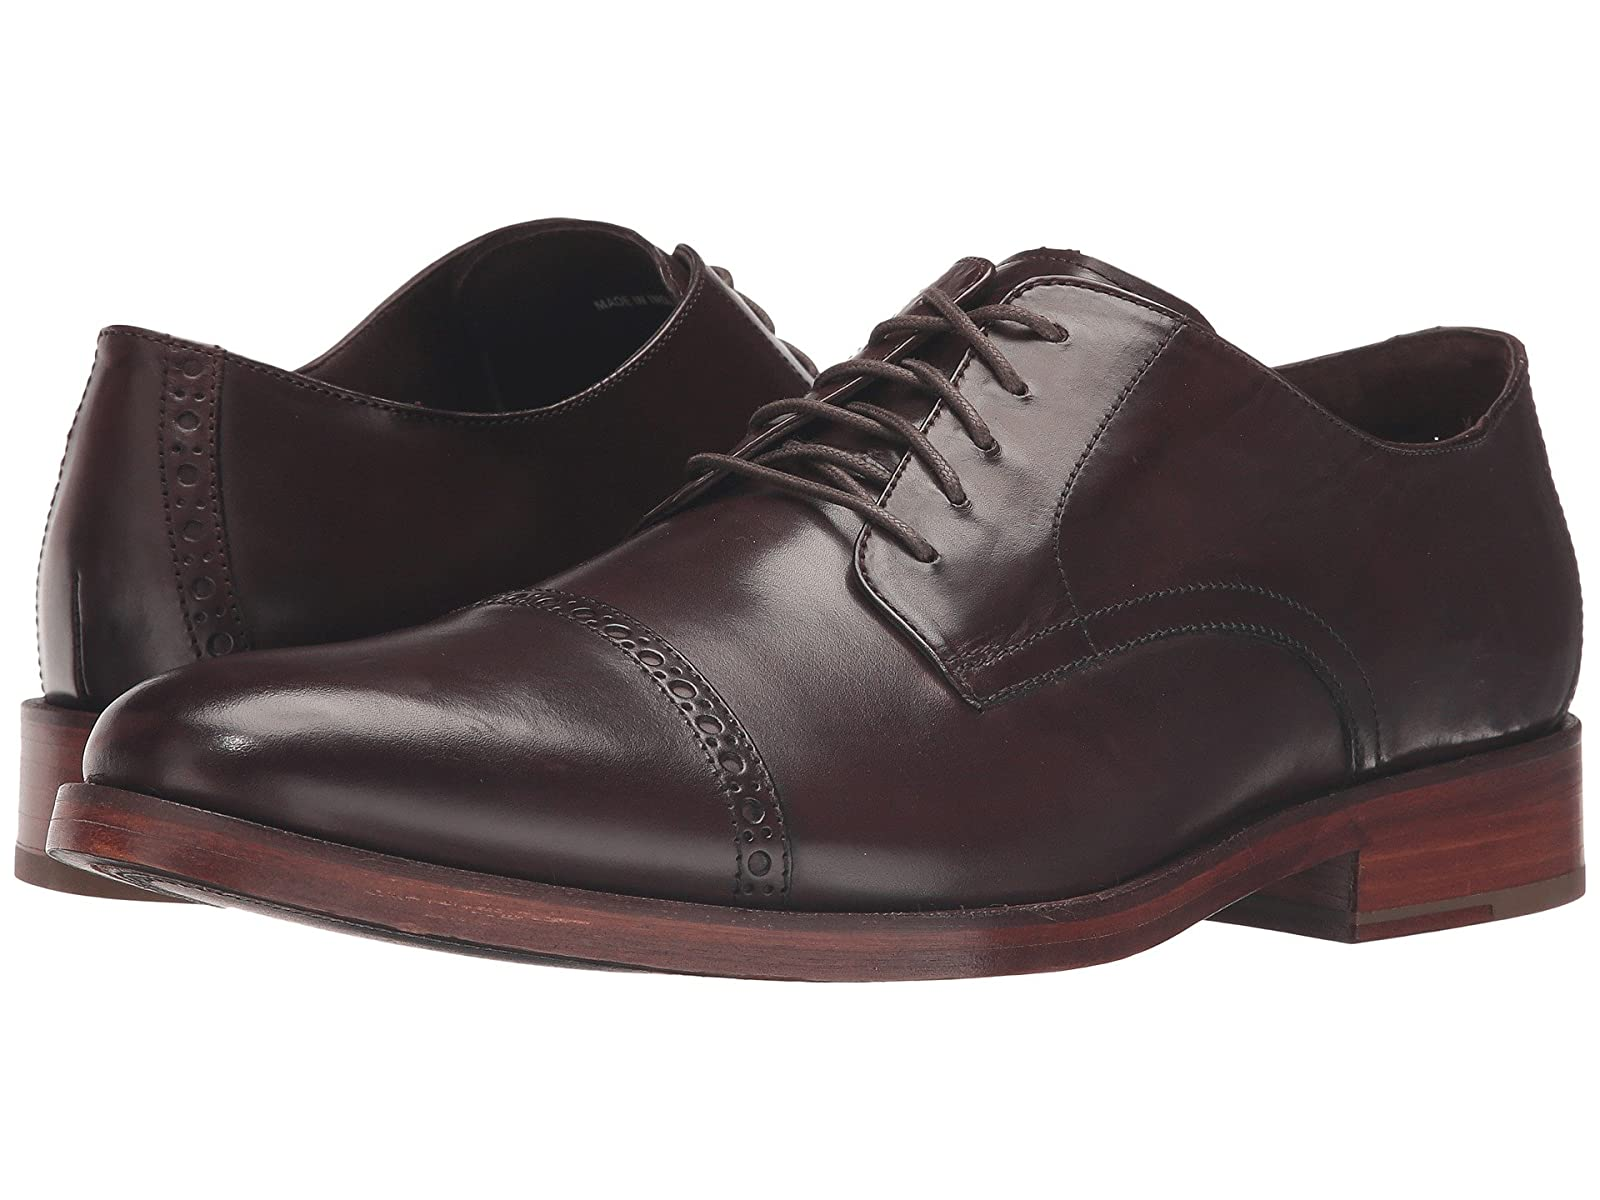 Cole Haan Preston Grand CapCheap and distinctive eye-catching shoes